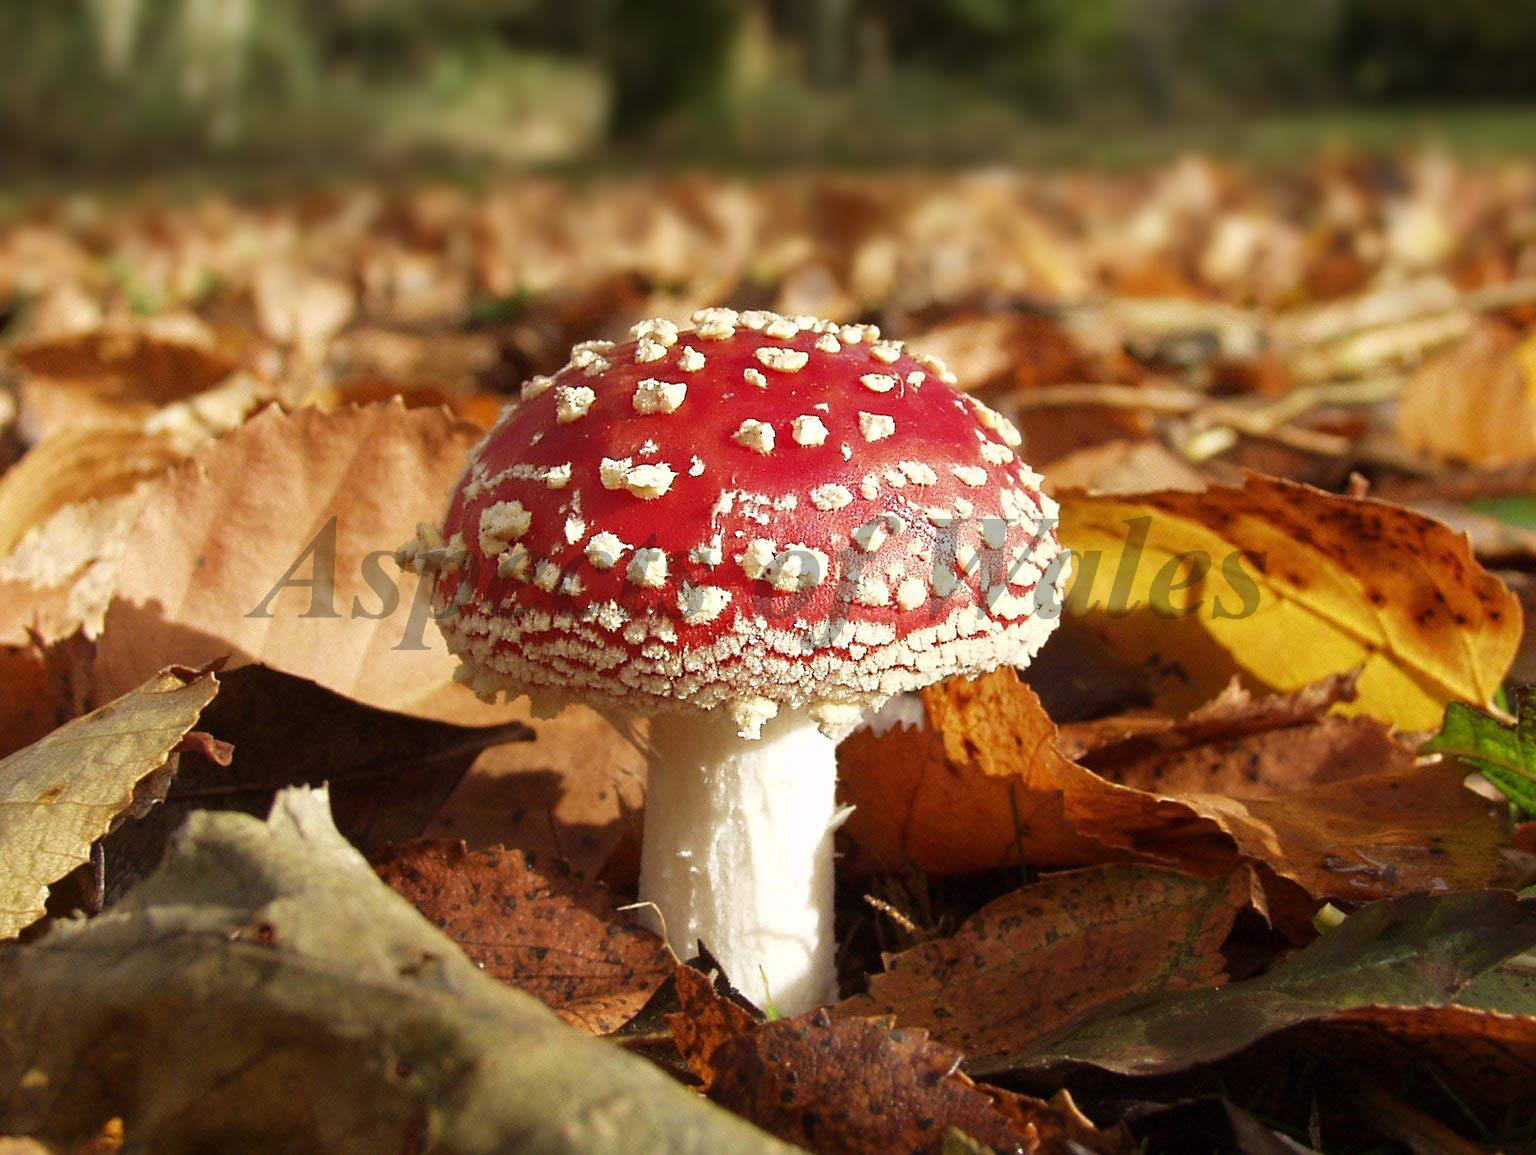 Fly agaric, Amanita muscaria